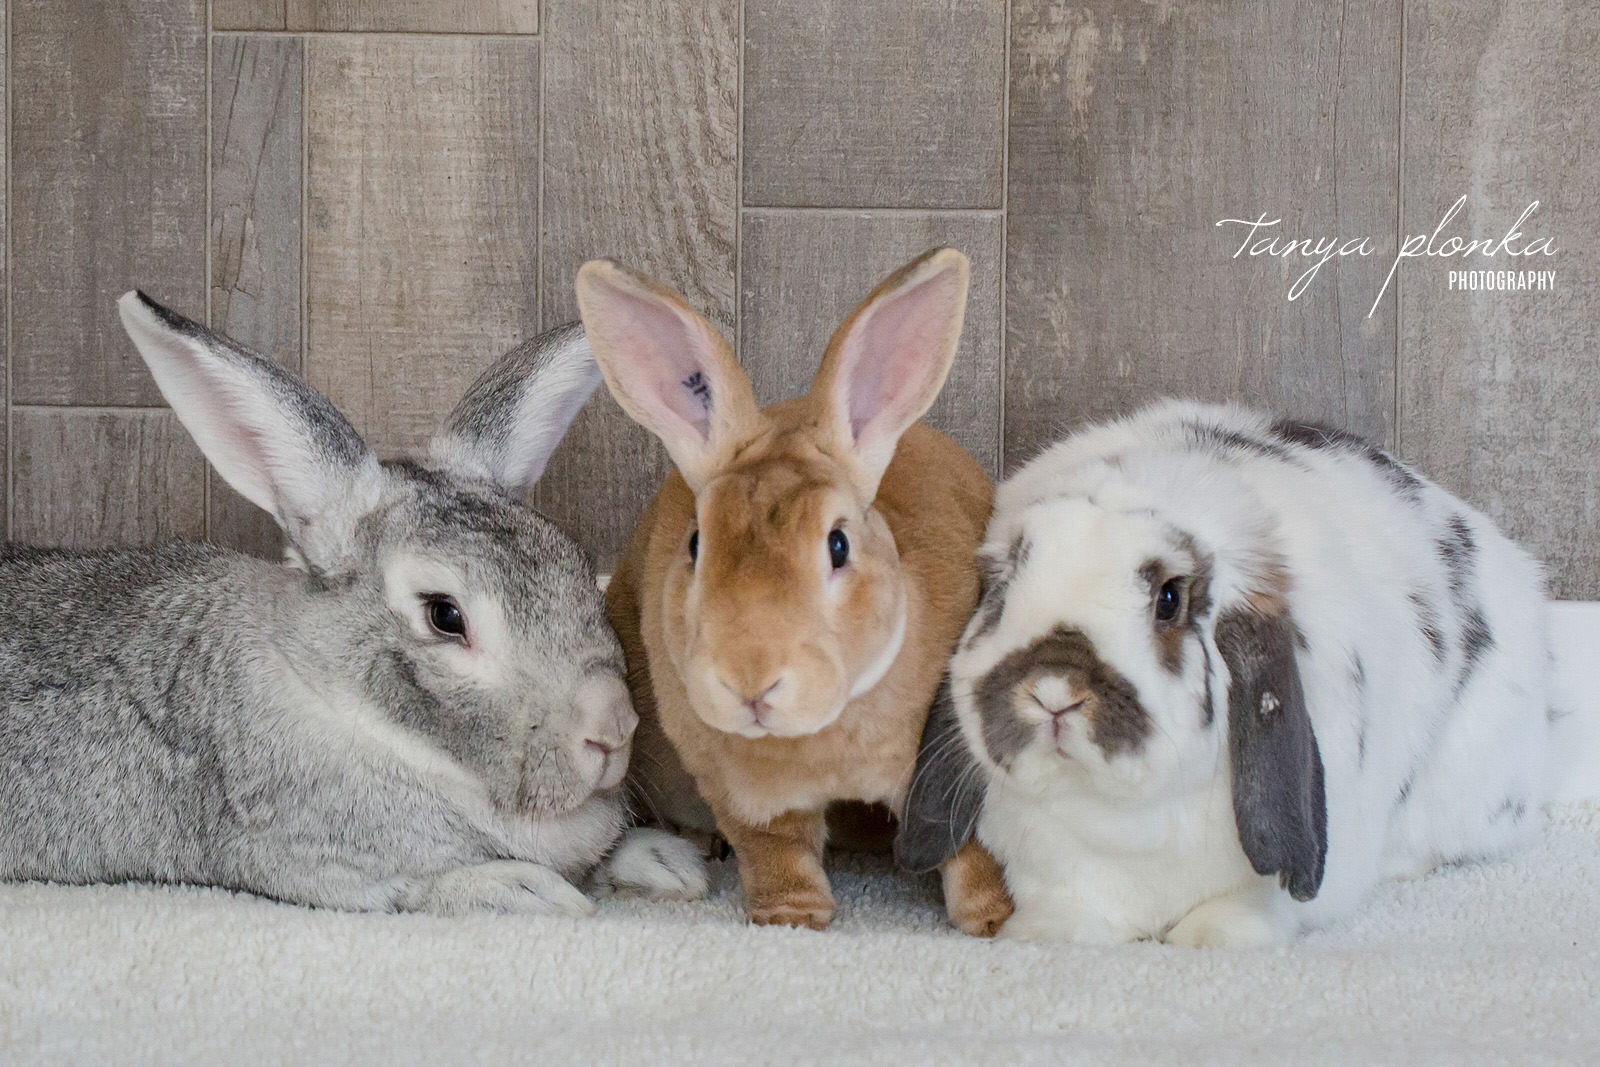 Three bunnies sitting in a row, gray bunny, tan bunny, spotted floppy ear bunny